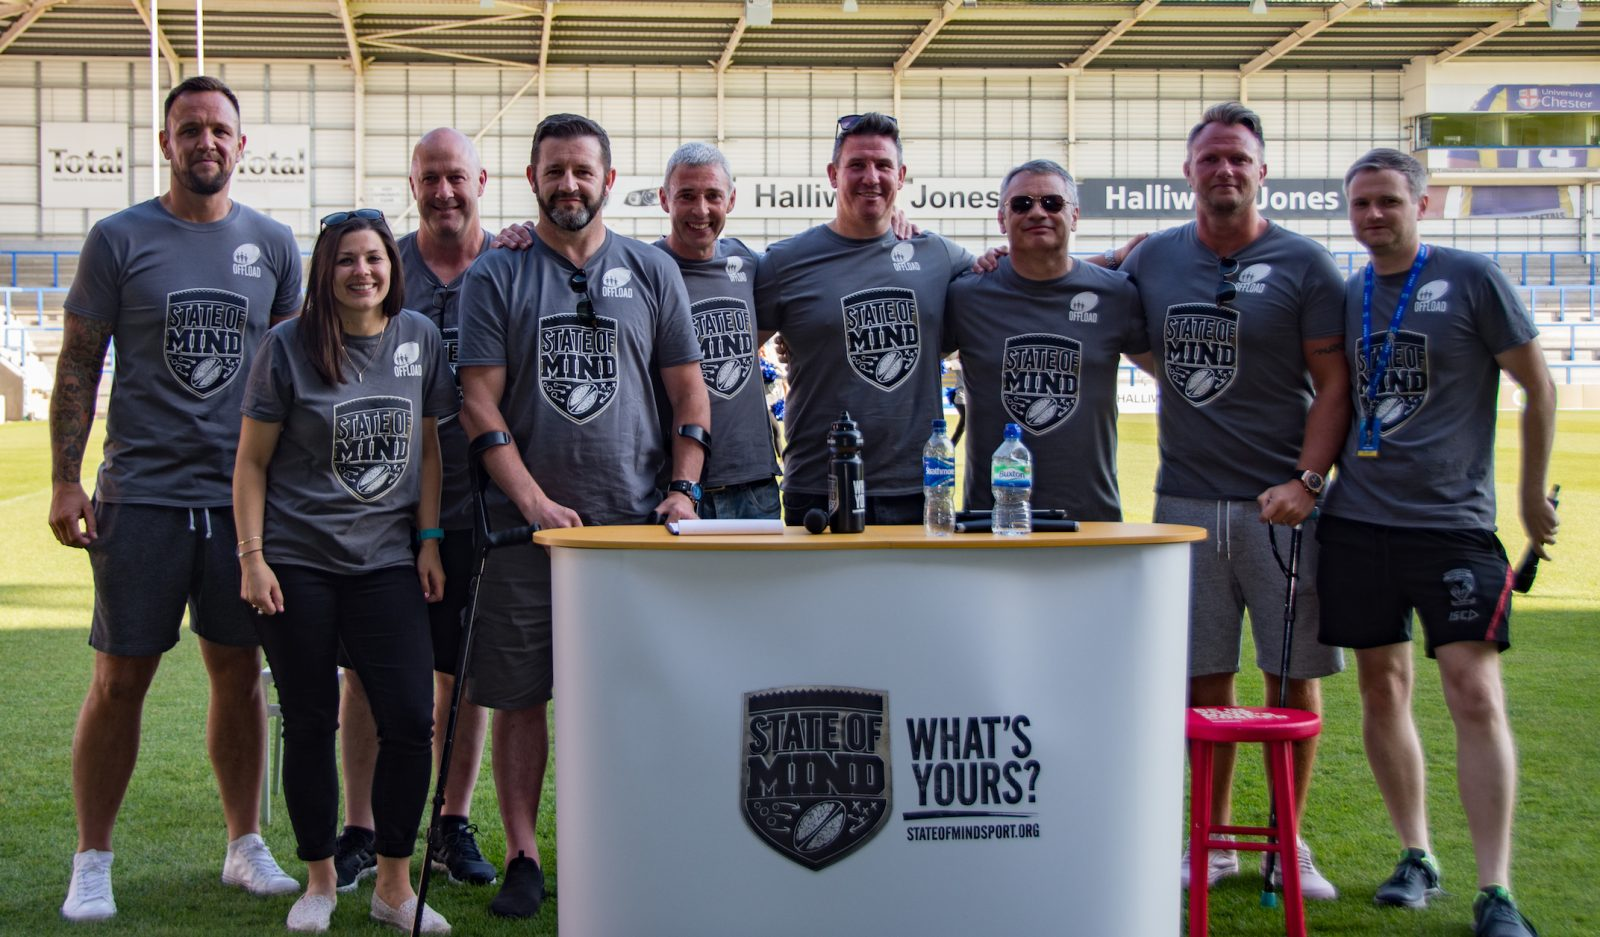 Super League fans get ready to Offload in State of Mind round